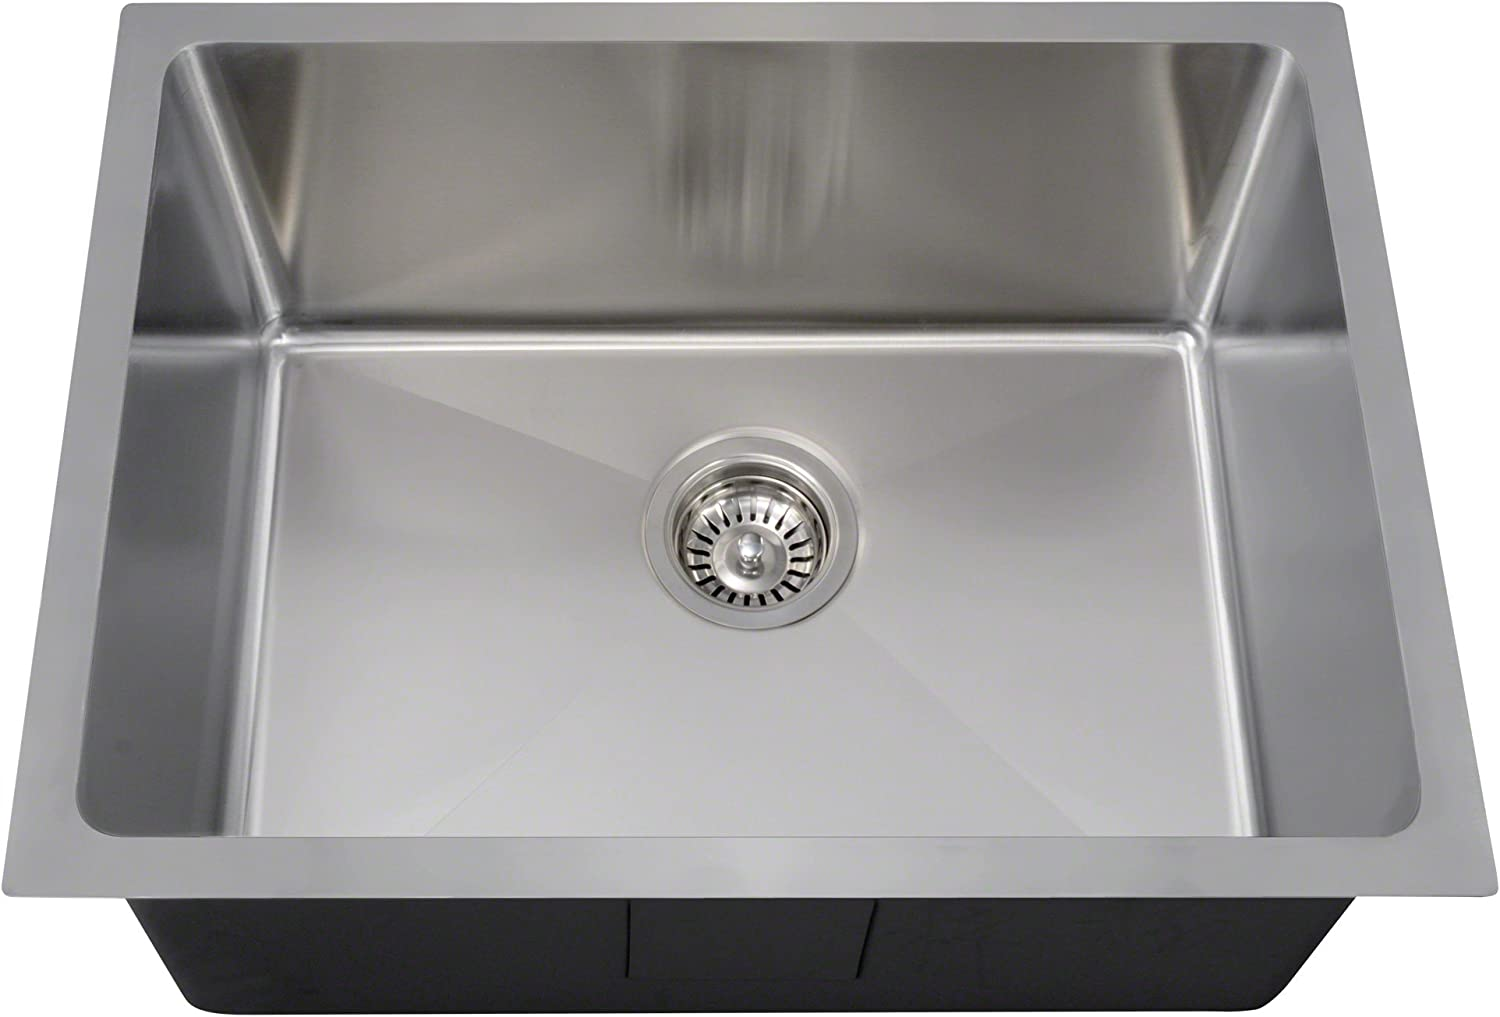 Elkay ELUH281610PDBG Lustertone Classic Single Bowl Undermount Stainless Steel Sink Kit with Perfect Drain